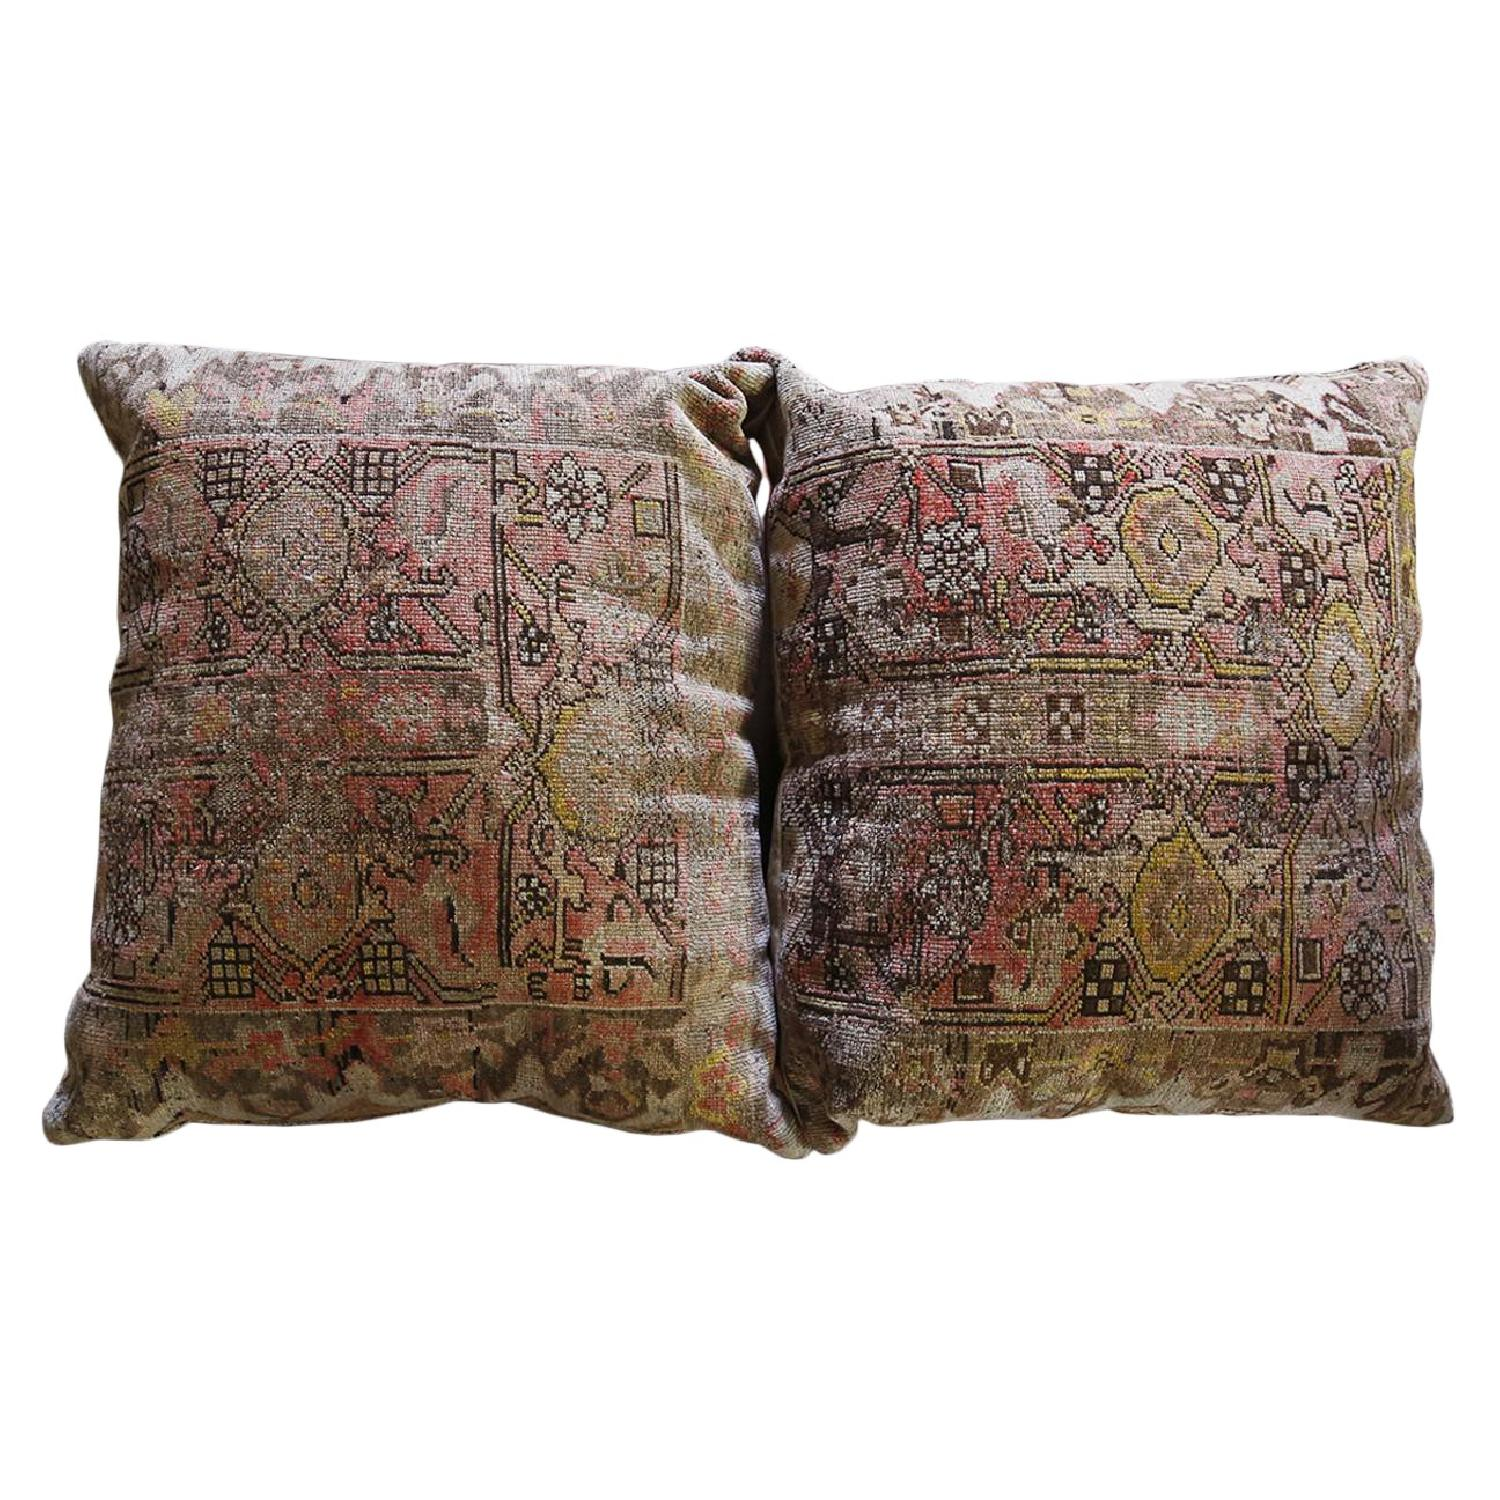 Large Pillows w/ Leather & Oriental Rug Upholstery